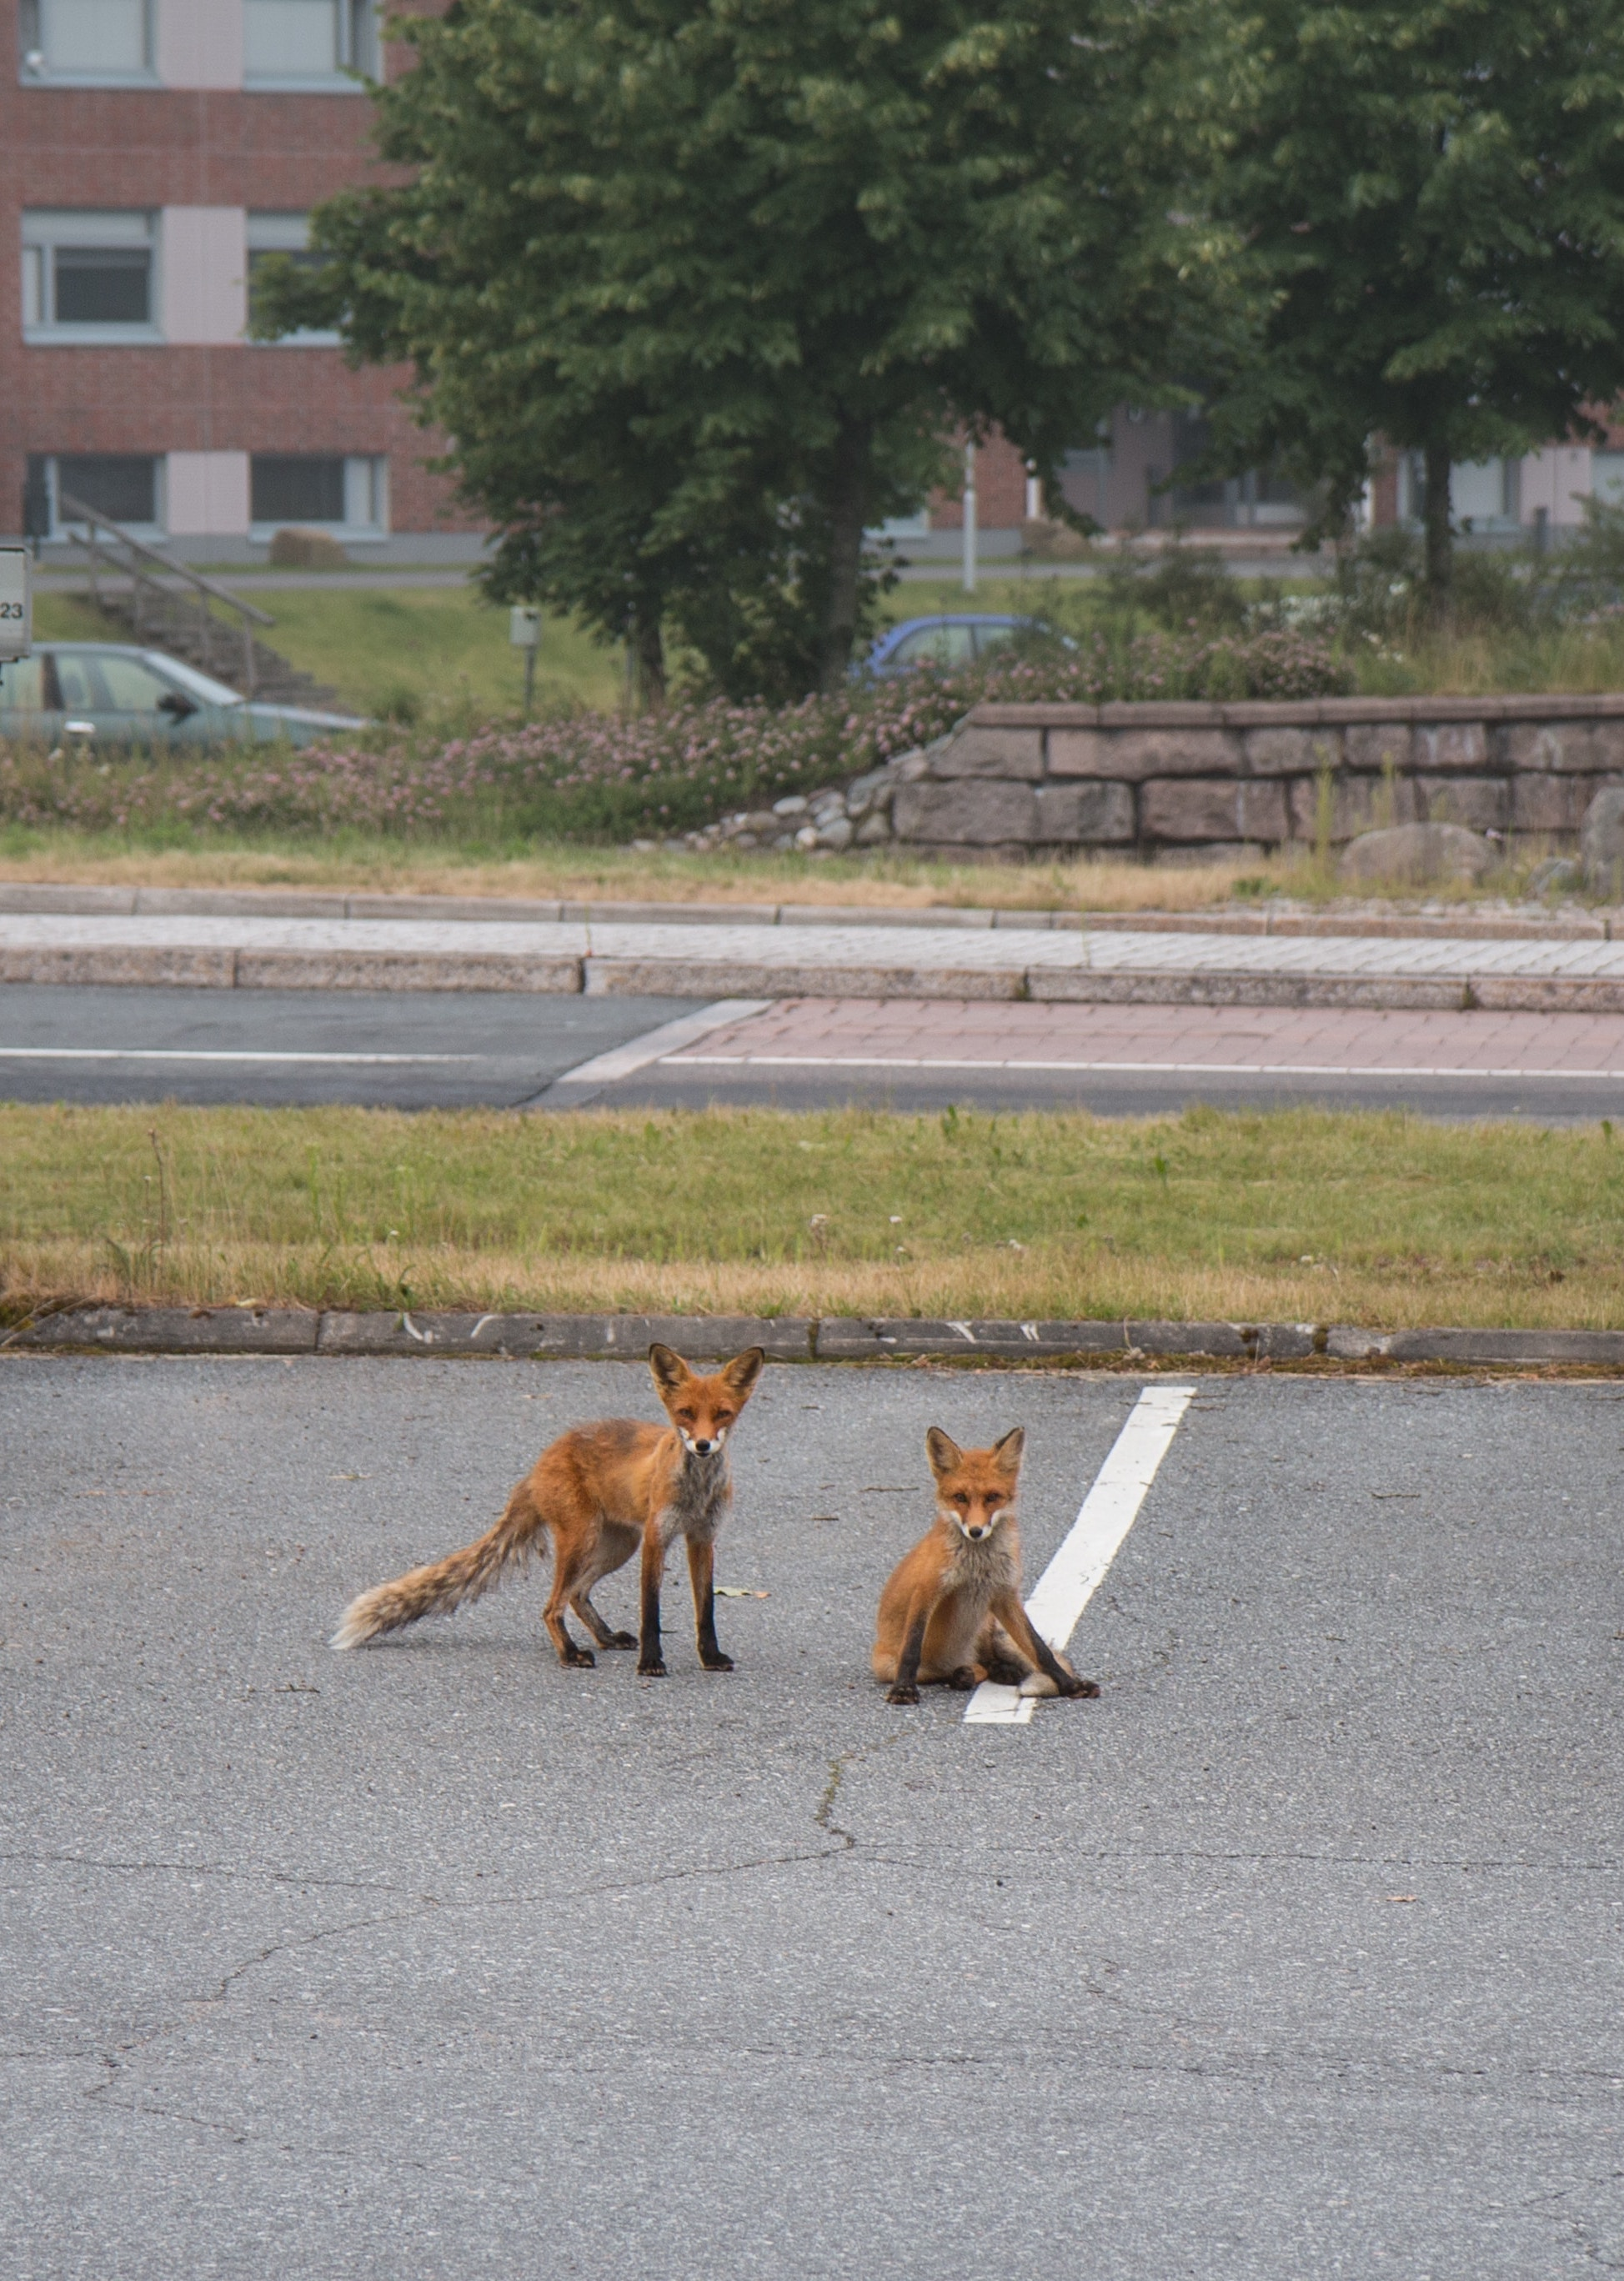 Two red foxes in a parking lot with a building in the background.